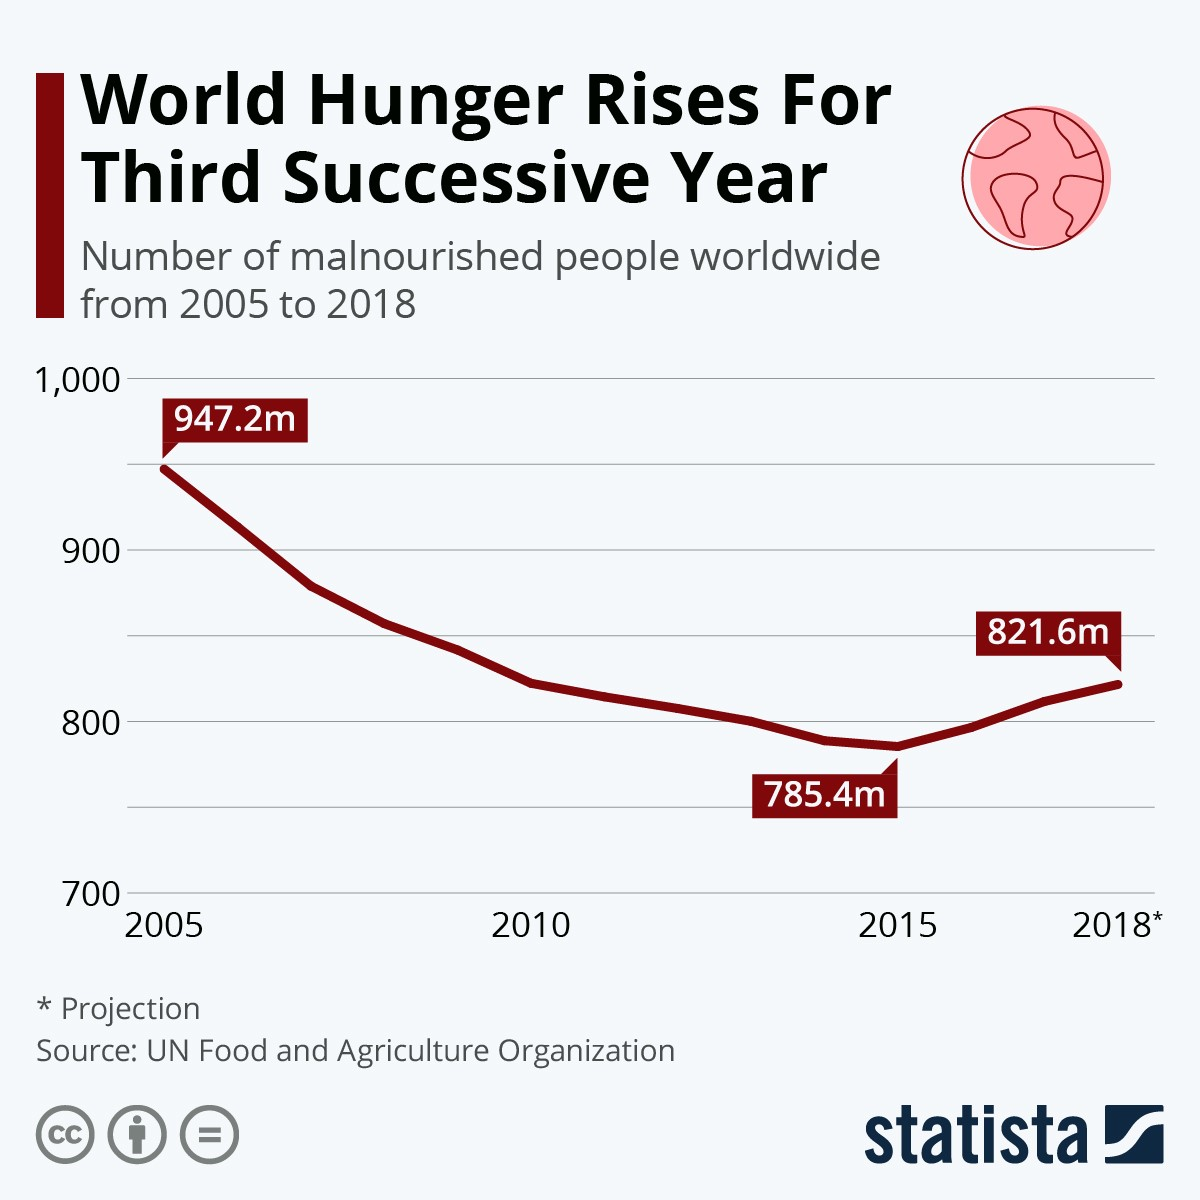 World Hunger Rises For Third Successive Year